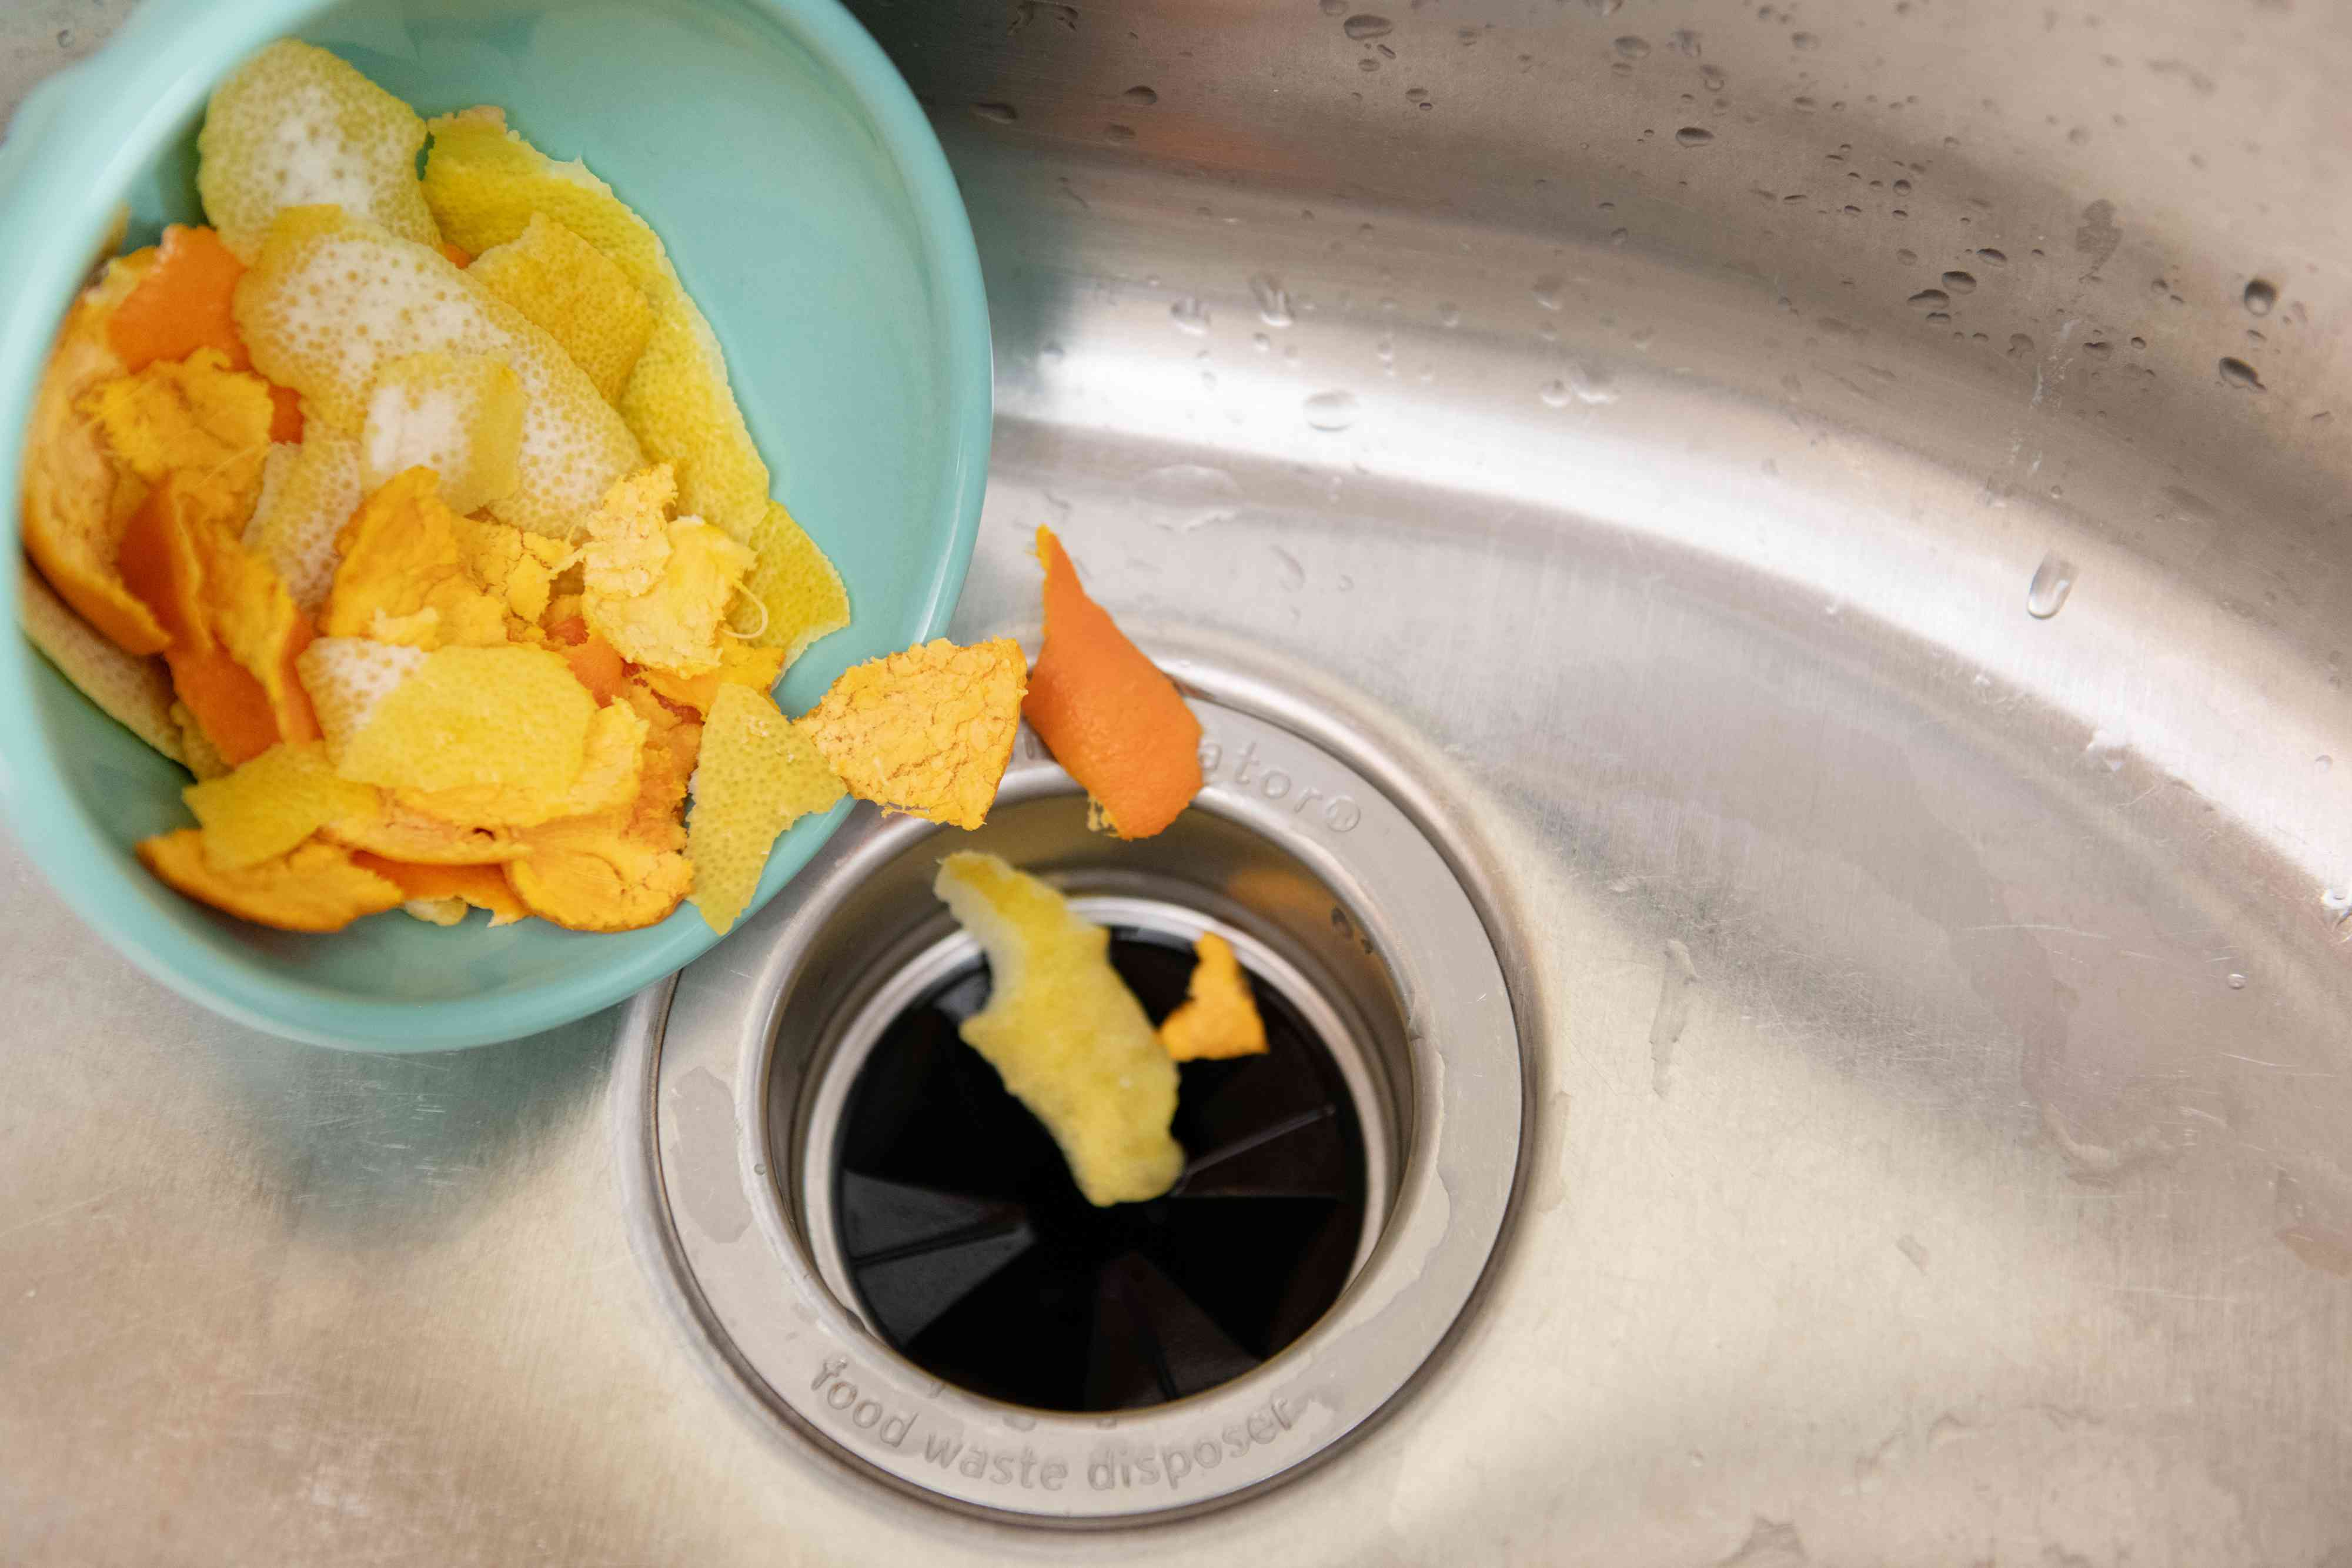 pouring citrus peels down a garbage disposal